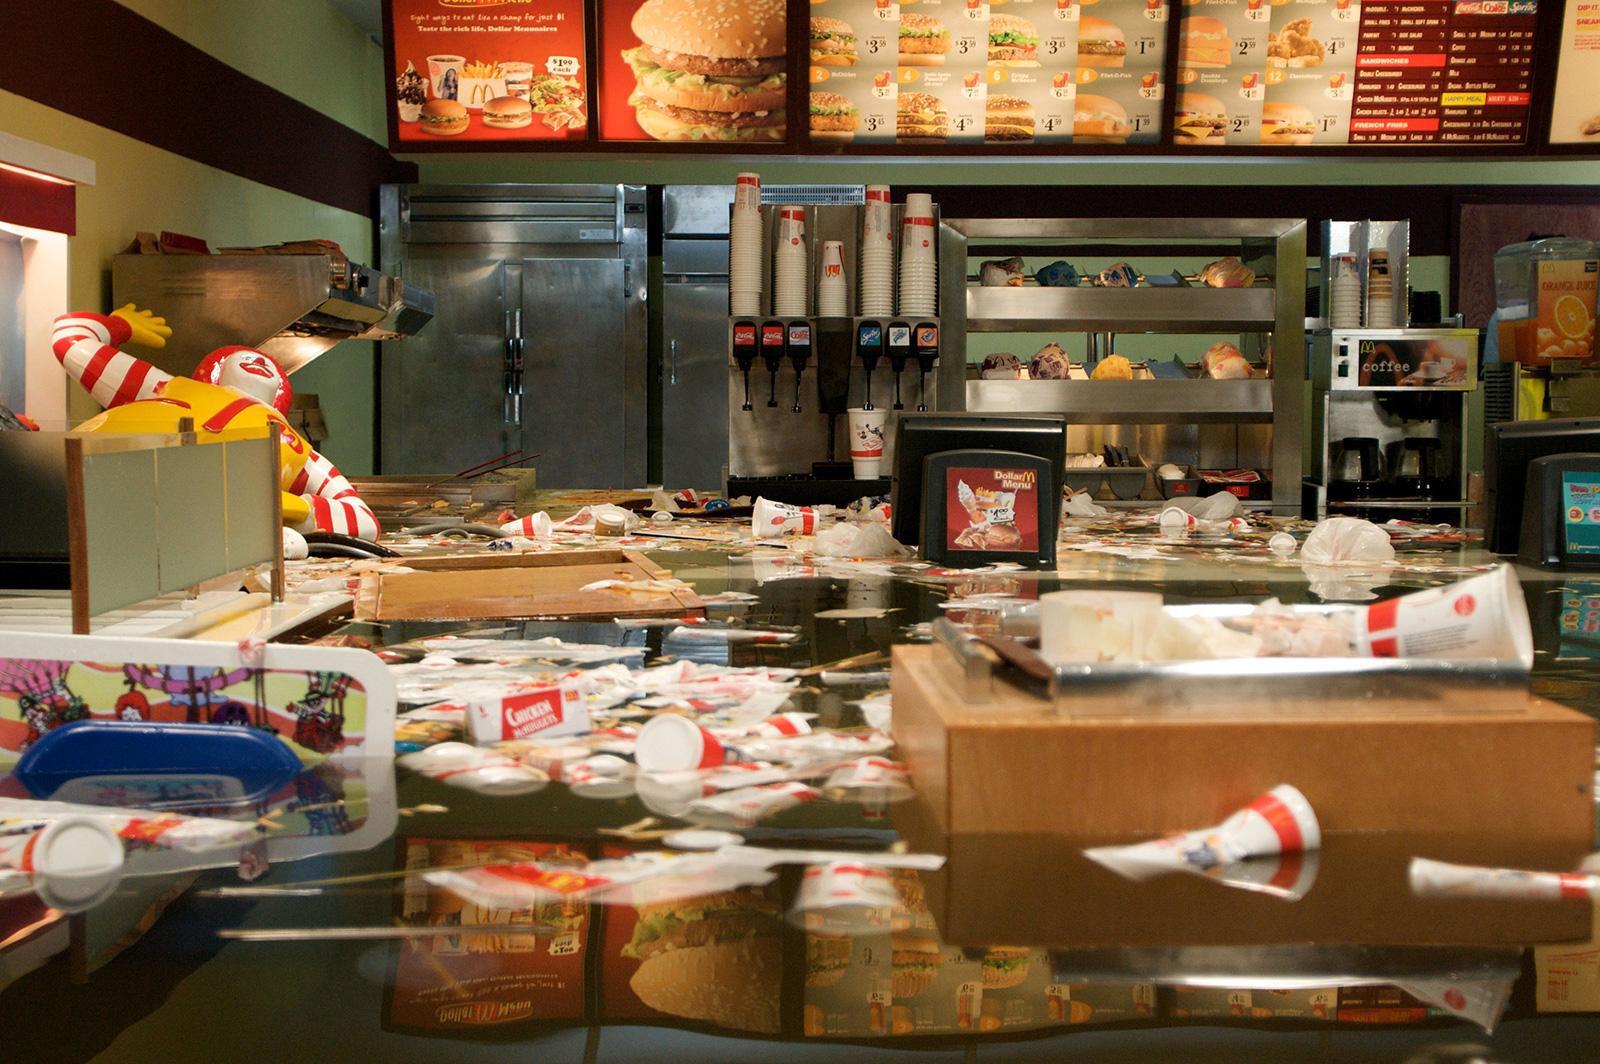 Superflex, 'Flooded Macdonalds', 2008. Courtesy of the artists / Tate Modern